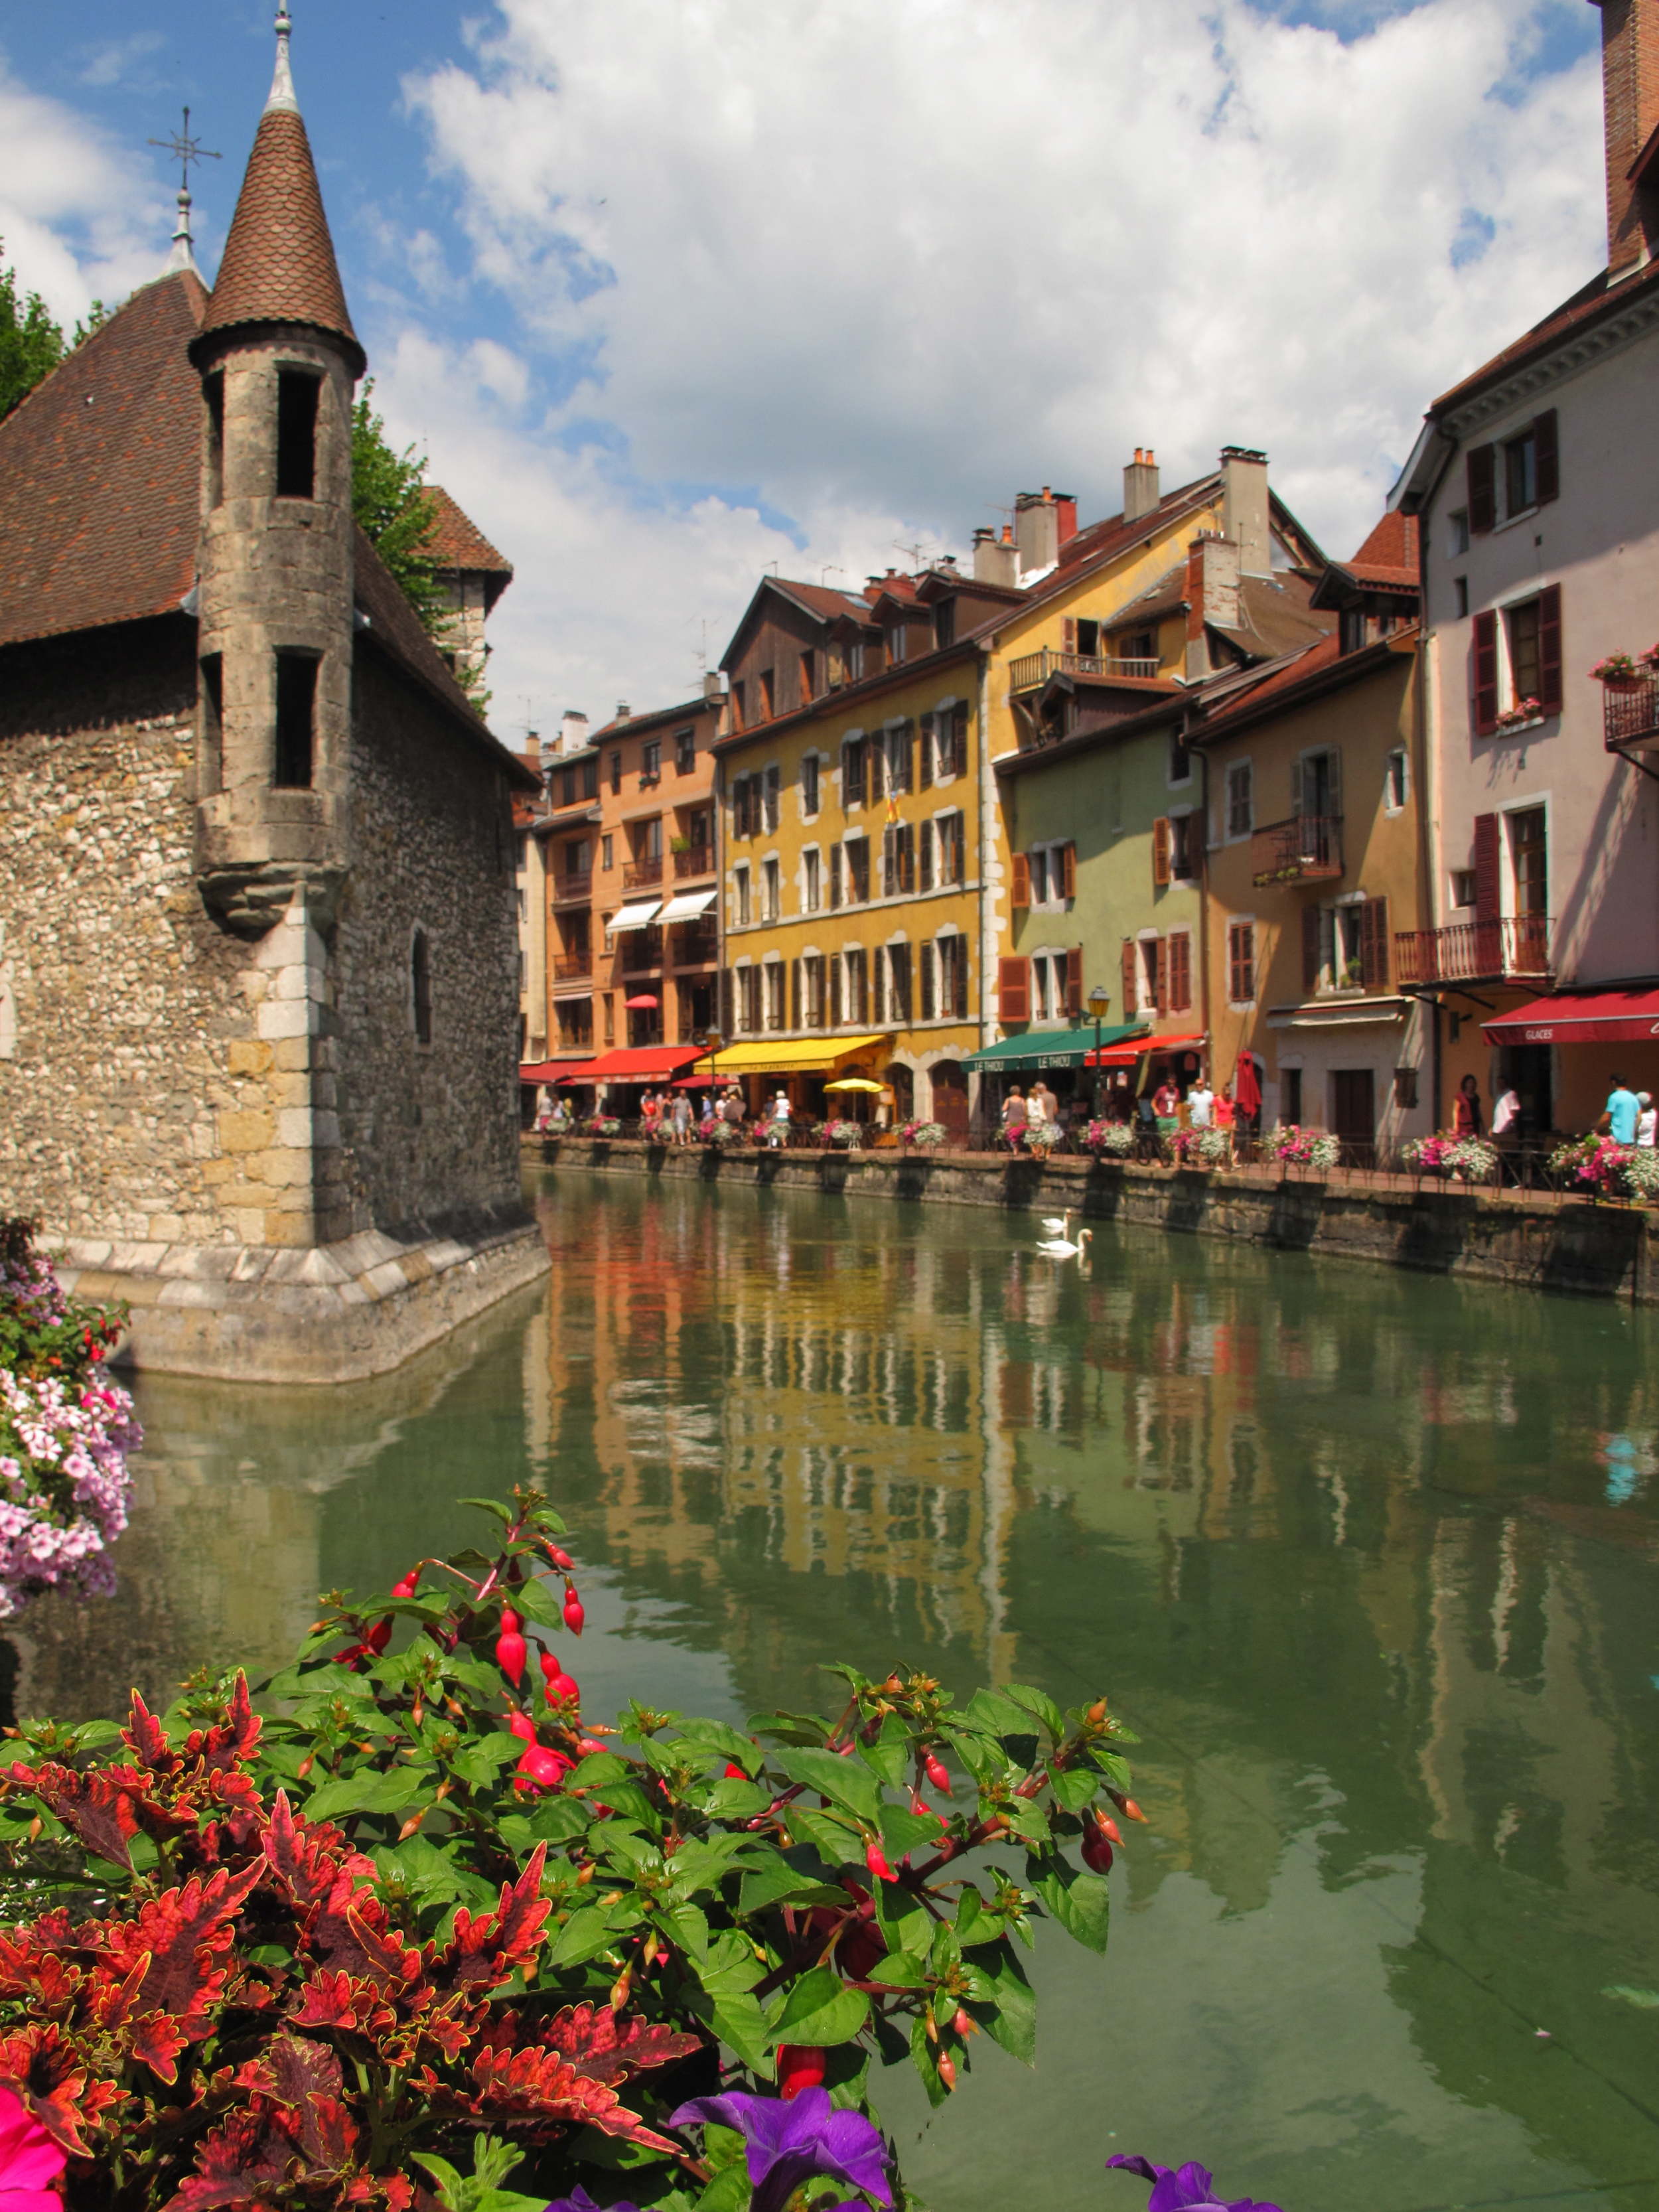 Annecy's beautiful canals and old buildings in Annecy le Vieux - with flowers in the summer